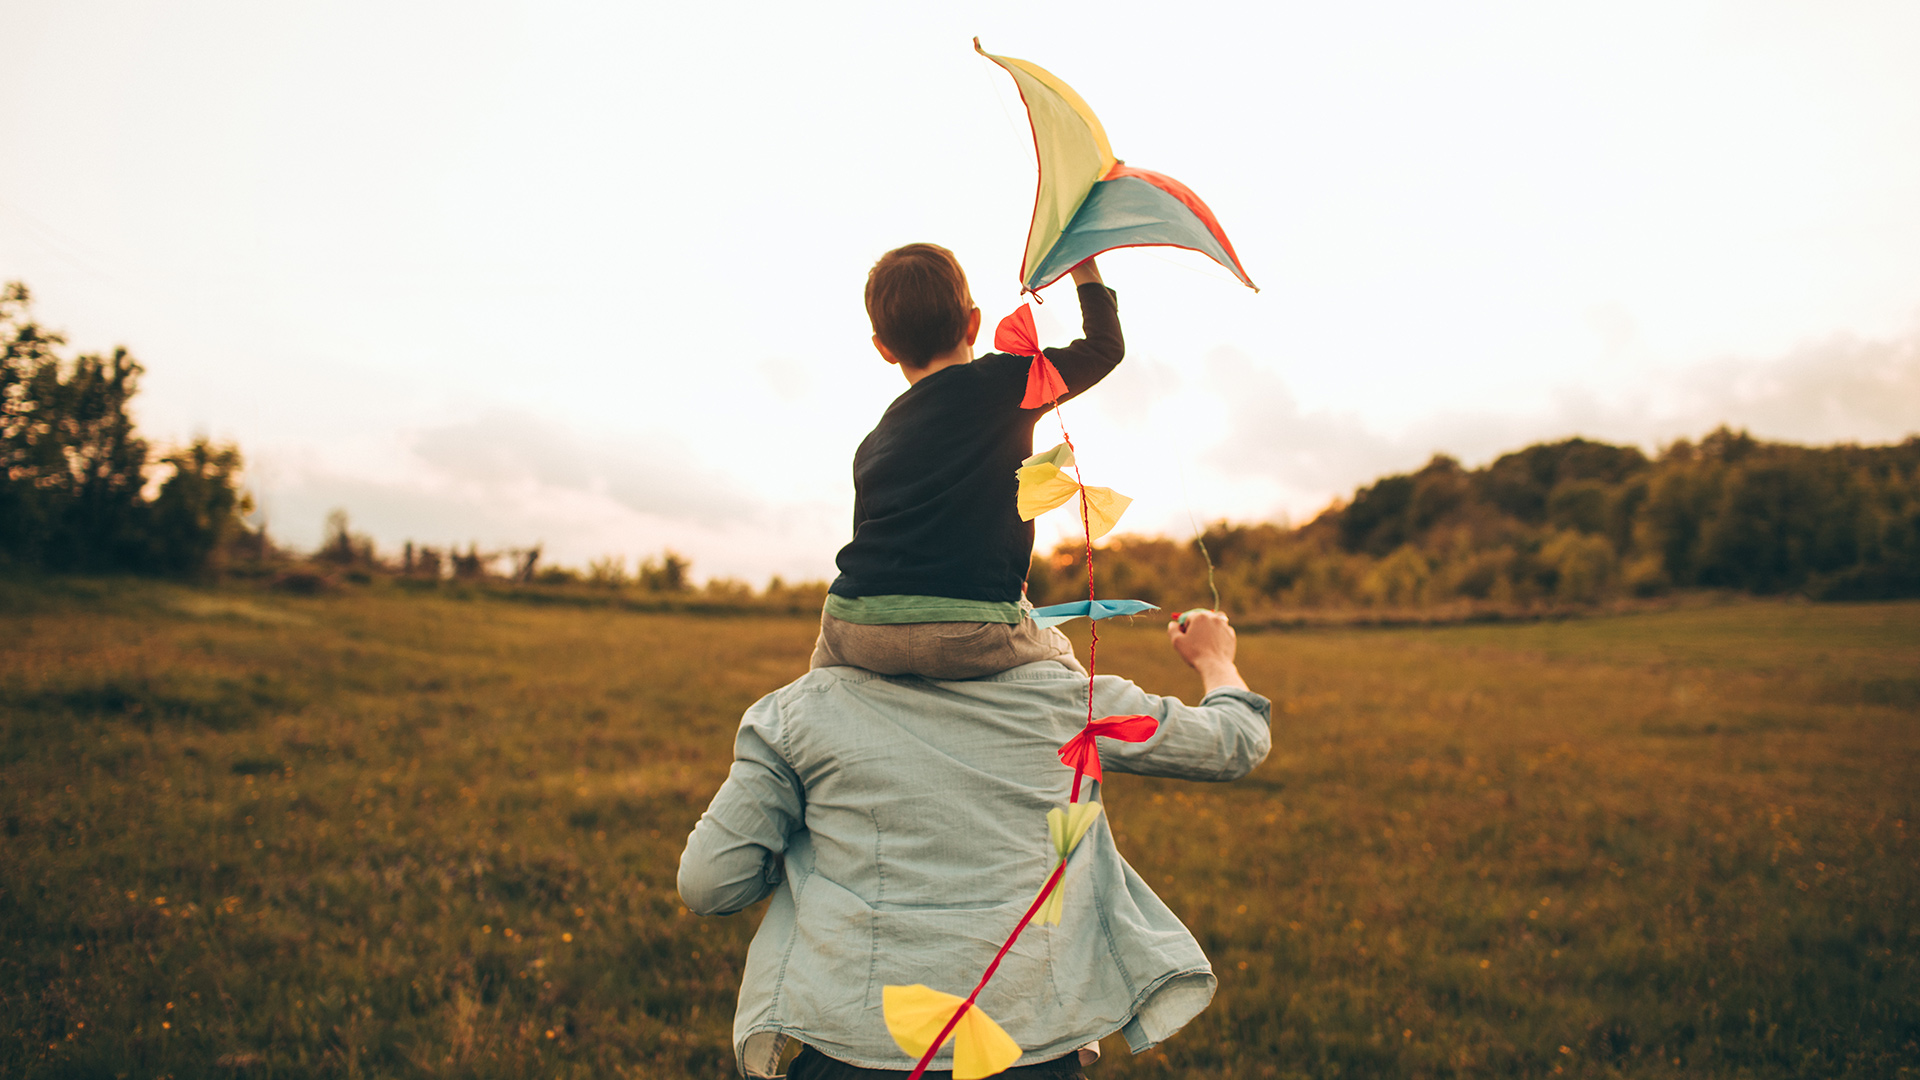 Diamond Crest is conveniently located near parks perfect for flying a kite.